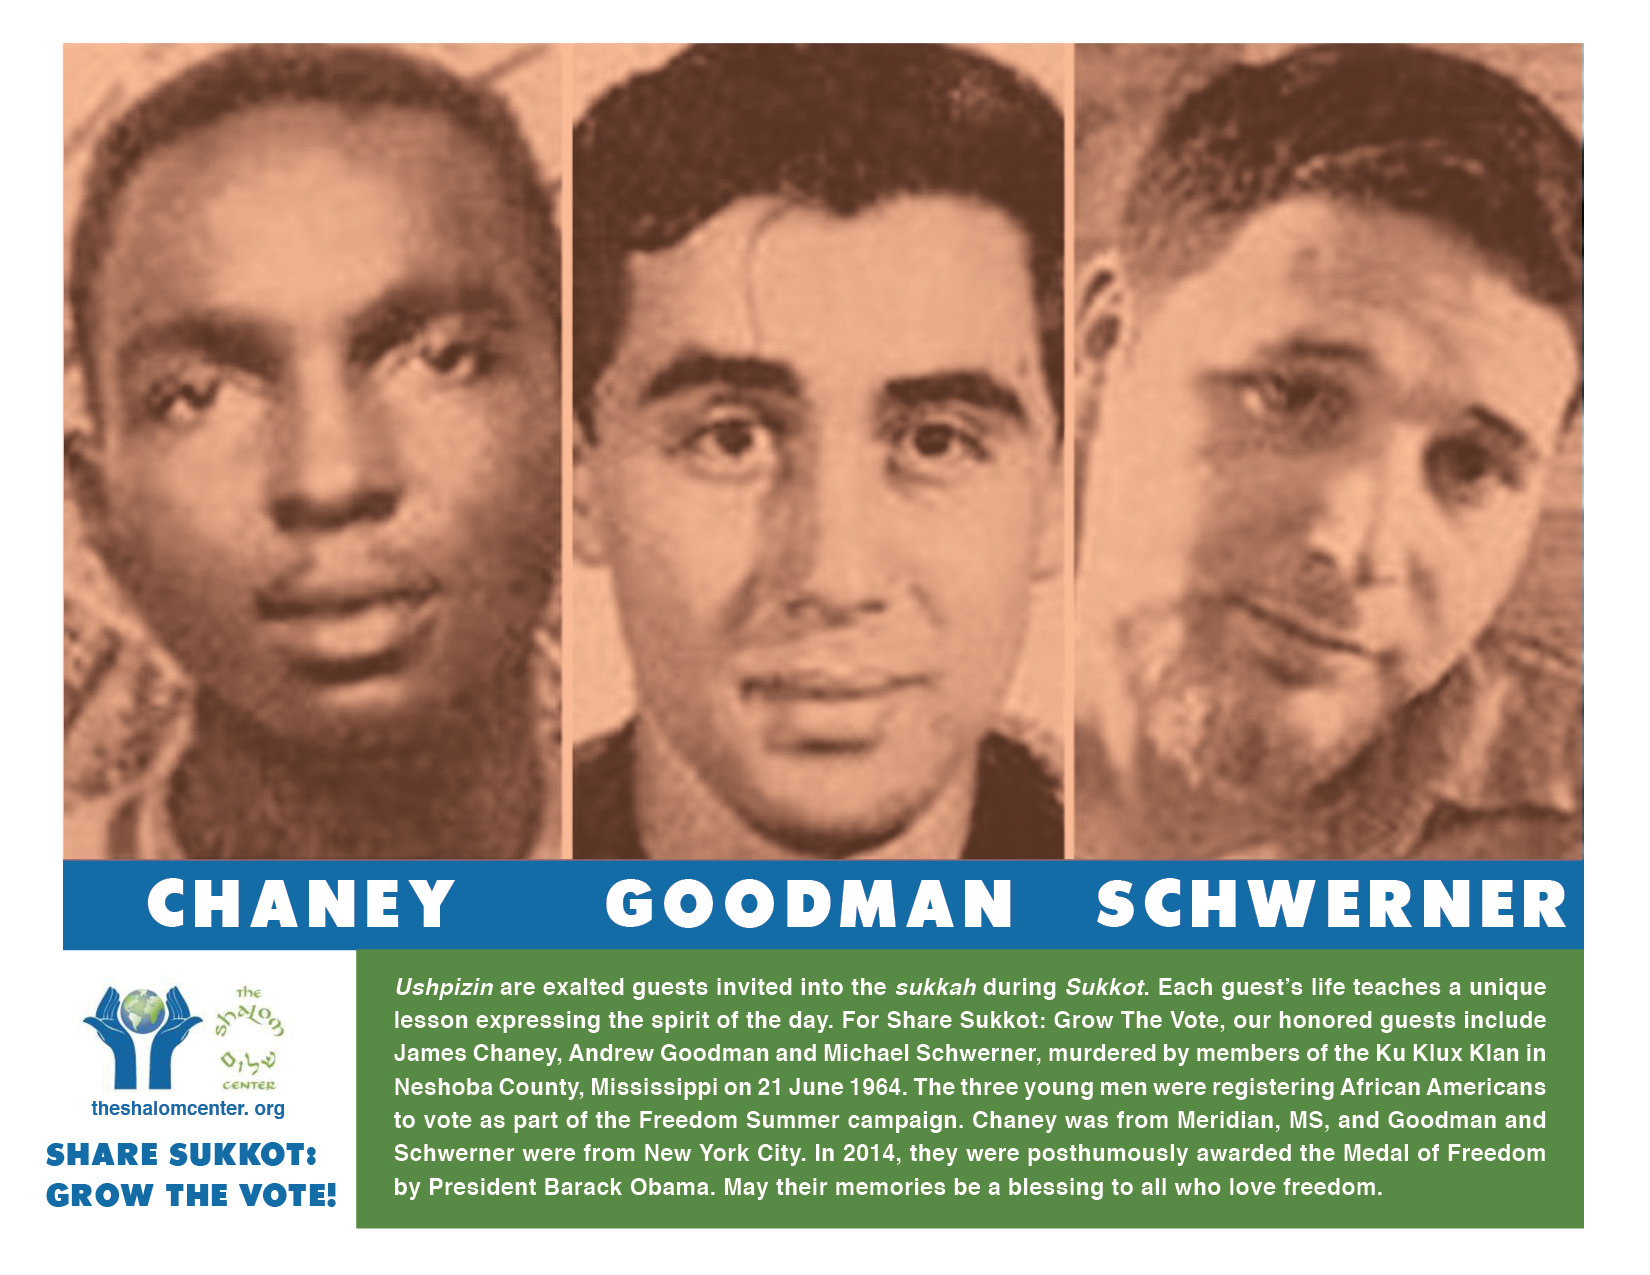 Ushpizin 1 - Goodman, Chaney, Schwerner